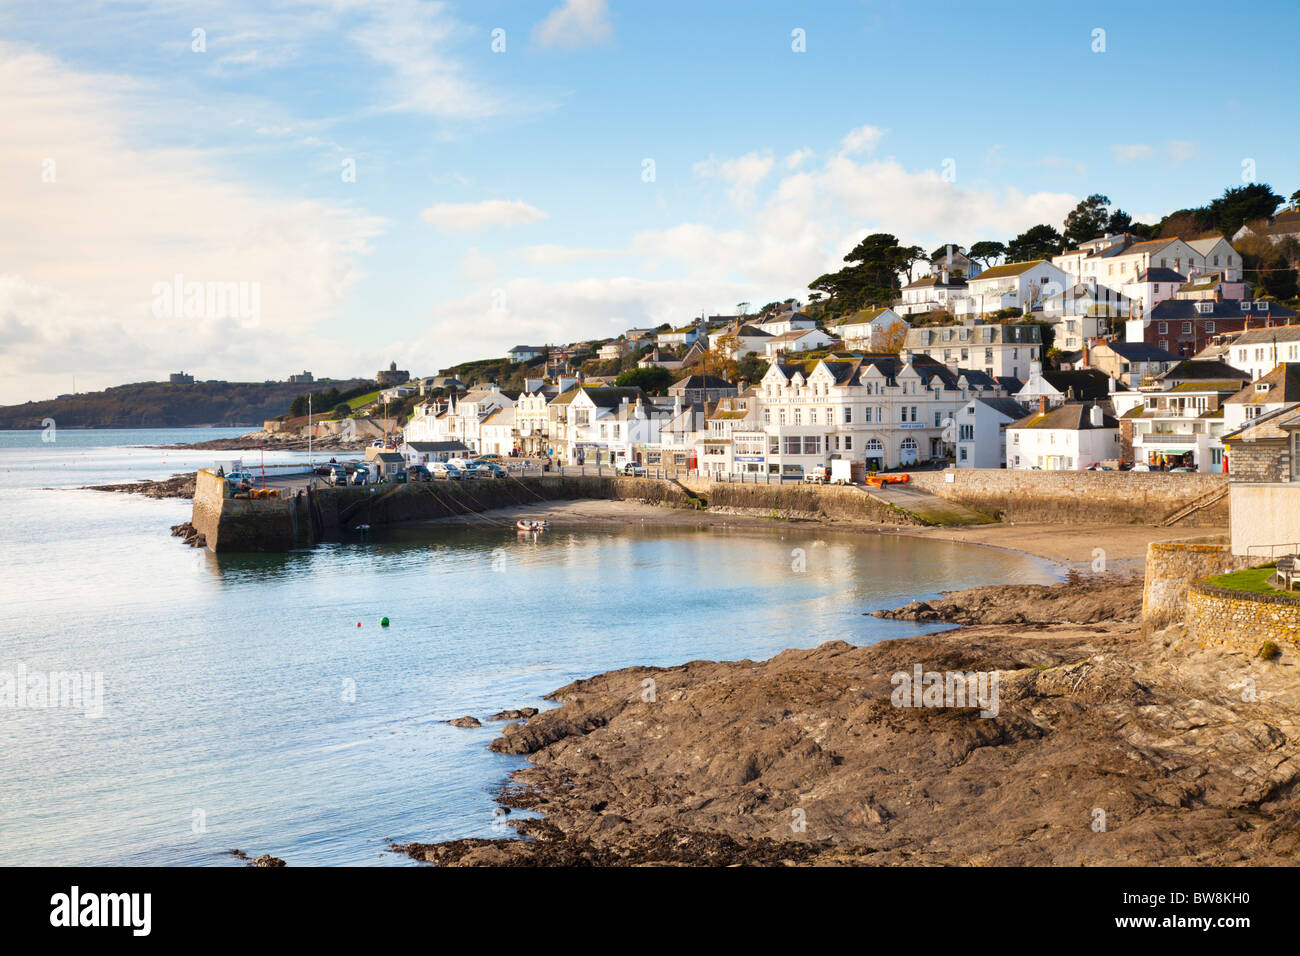 Le village balnéaire de St Mawes Cornwall Angleterre Photo Stock